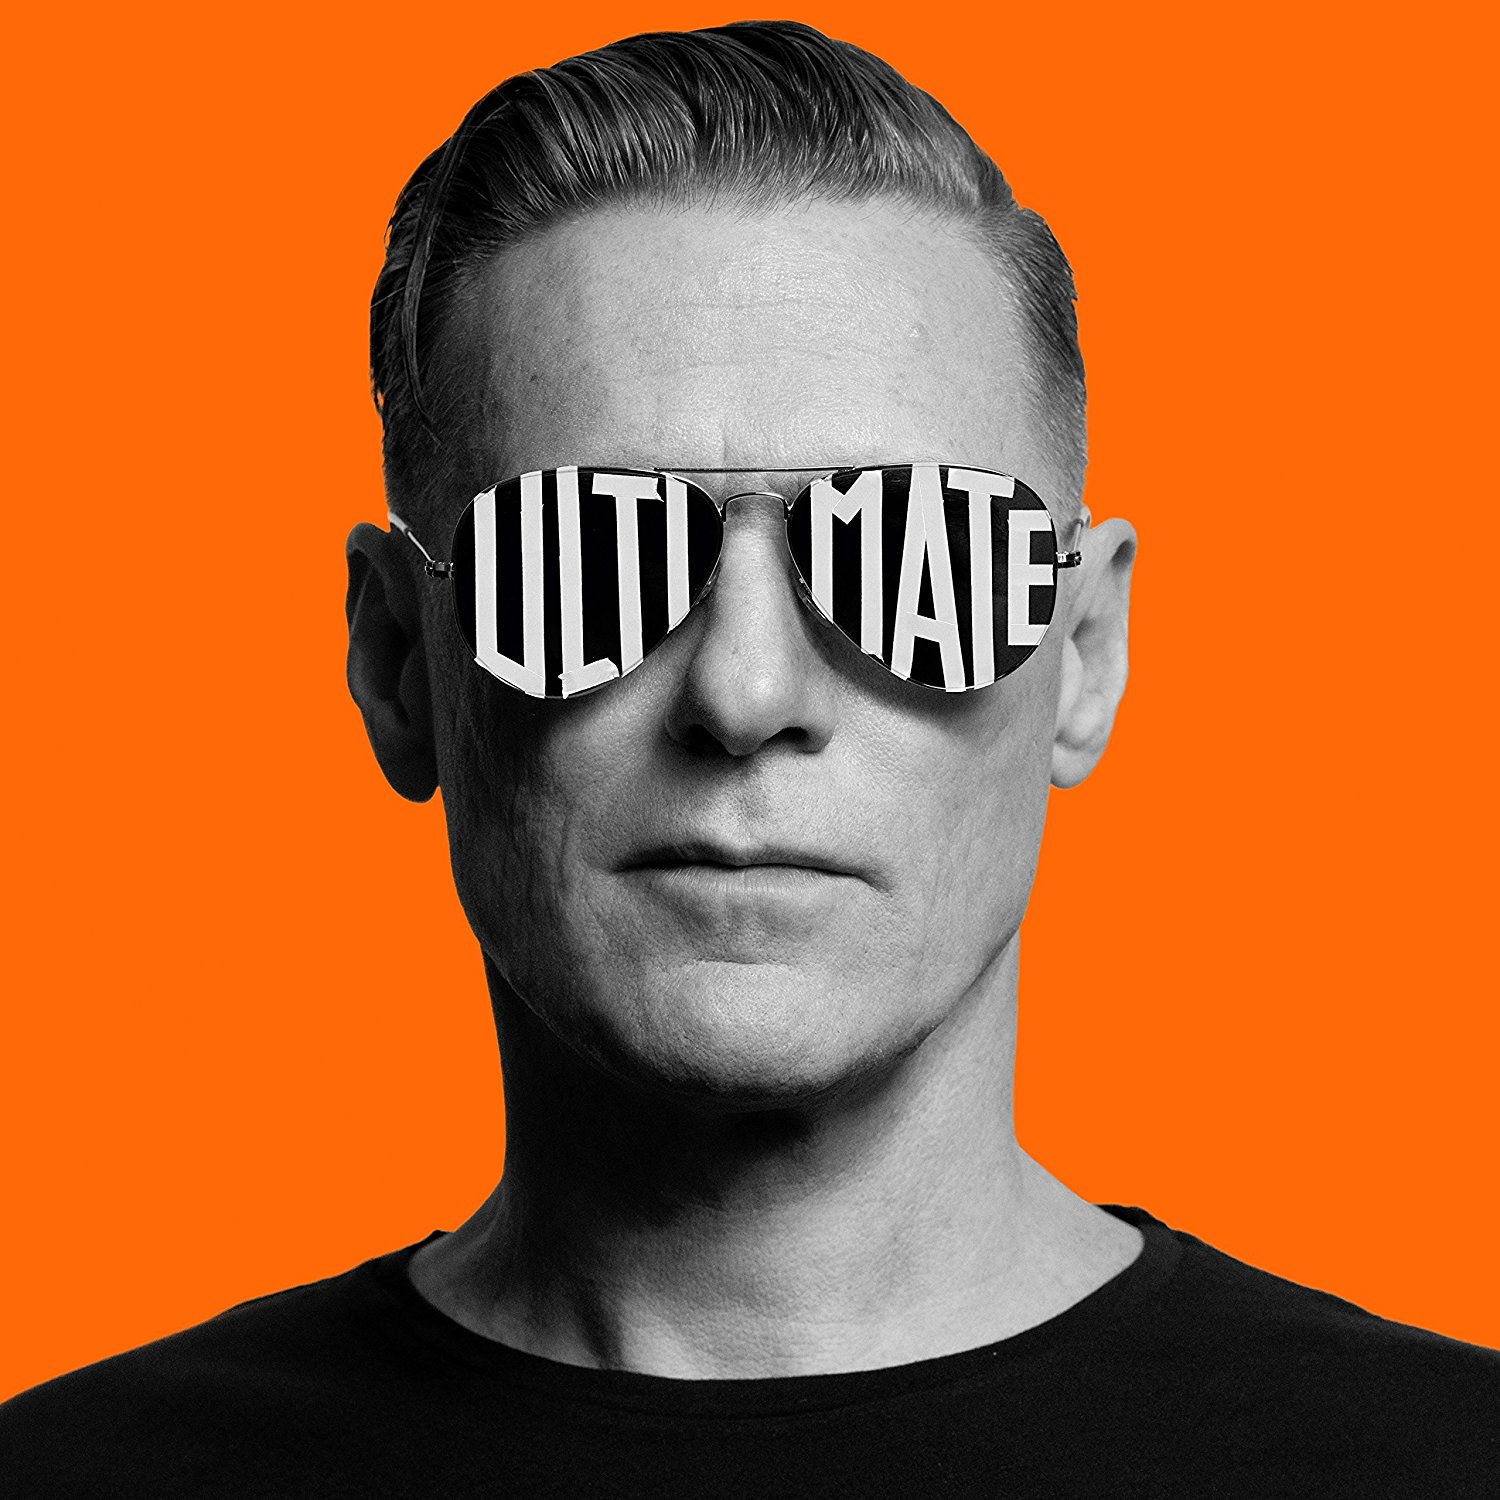 Ultimate – CD - Bryan Adams